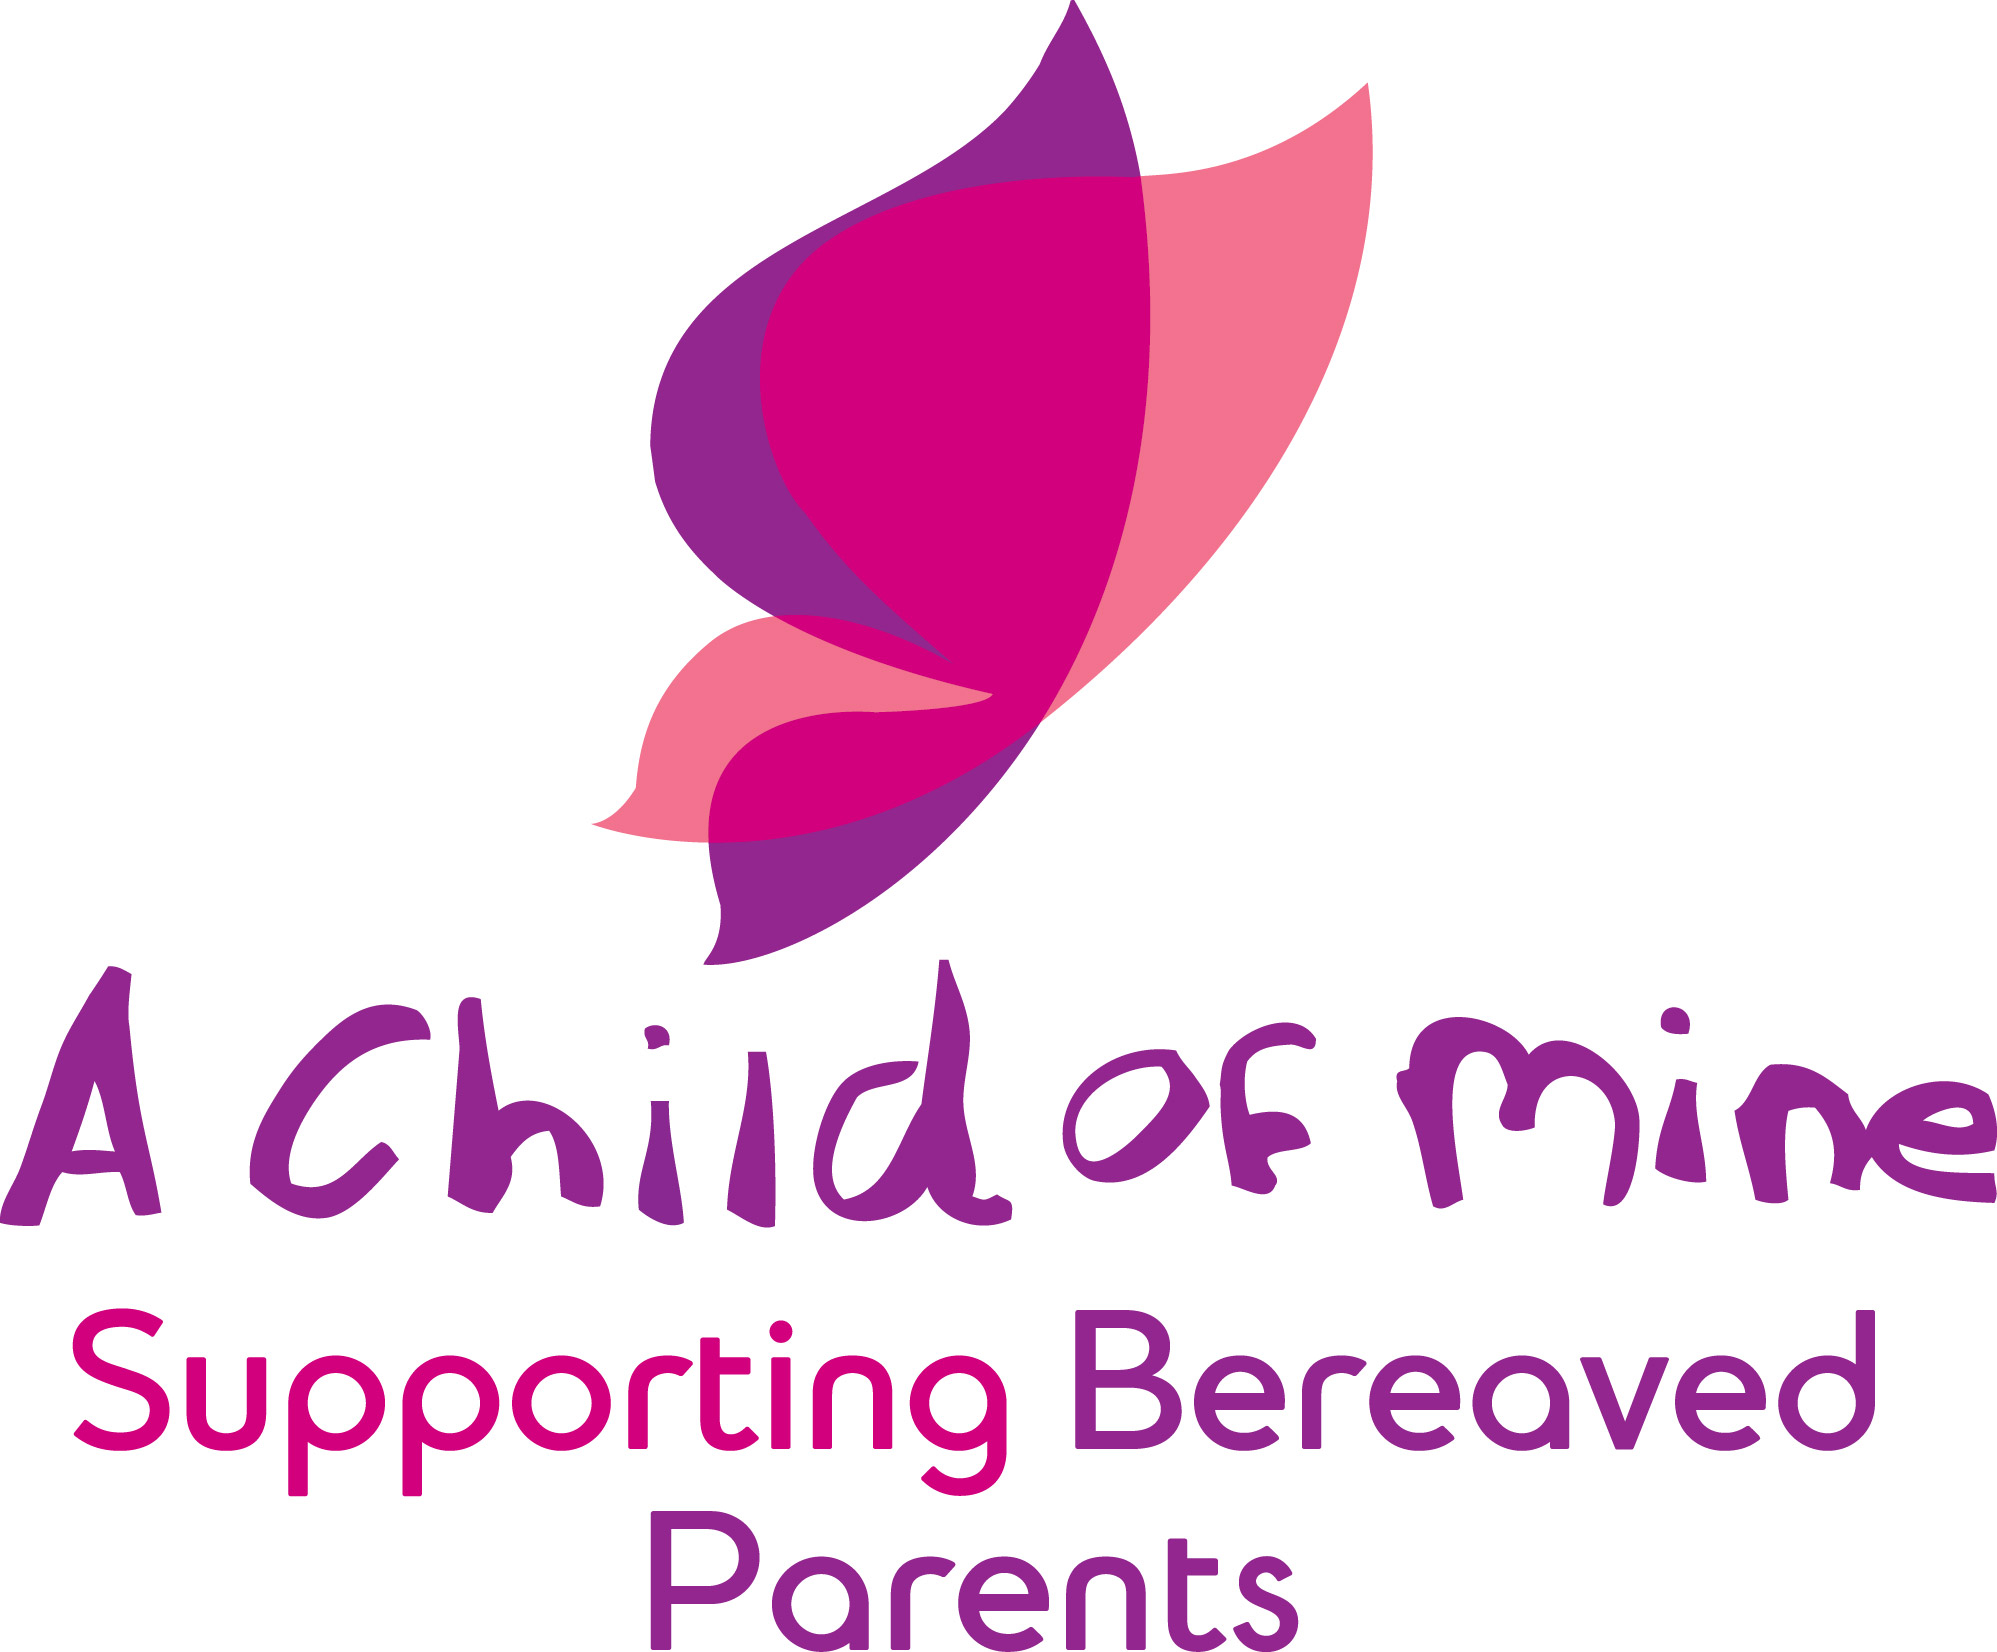 A Child of Mine Logo